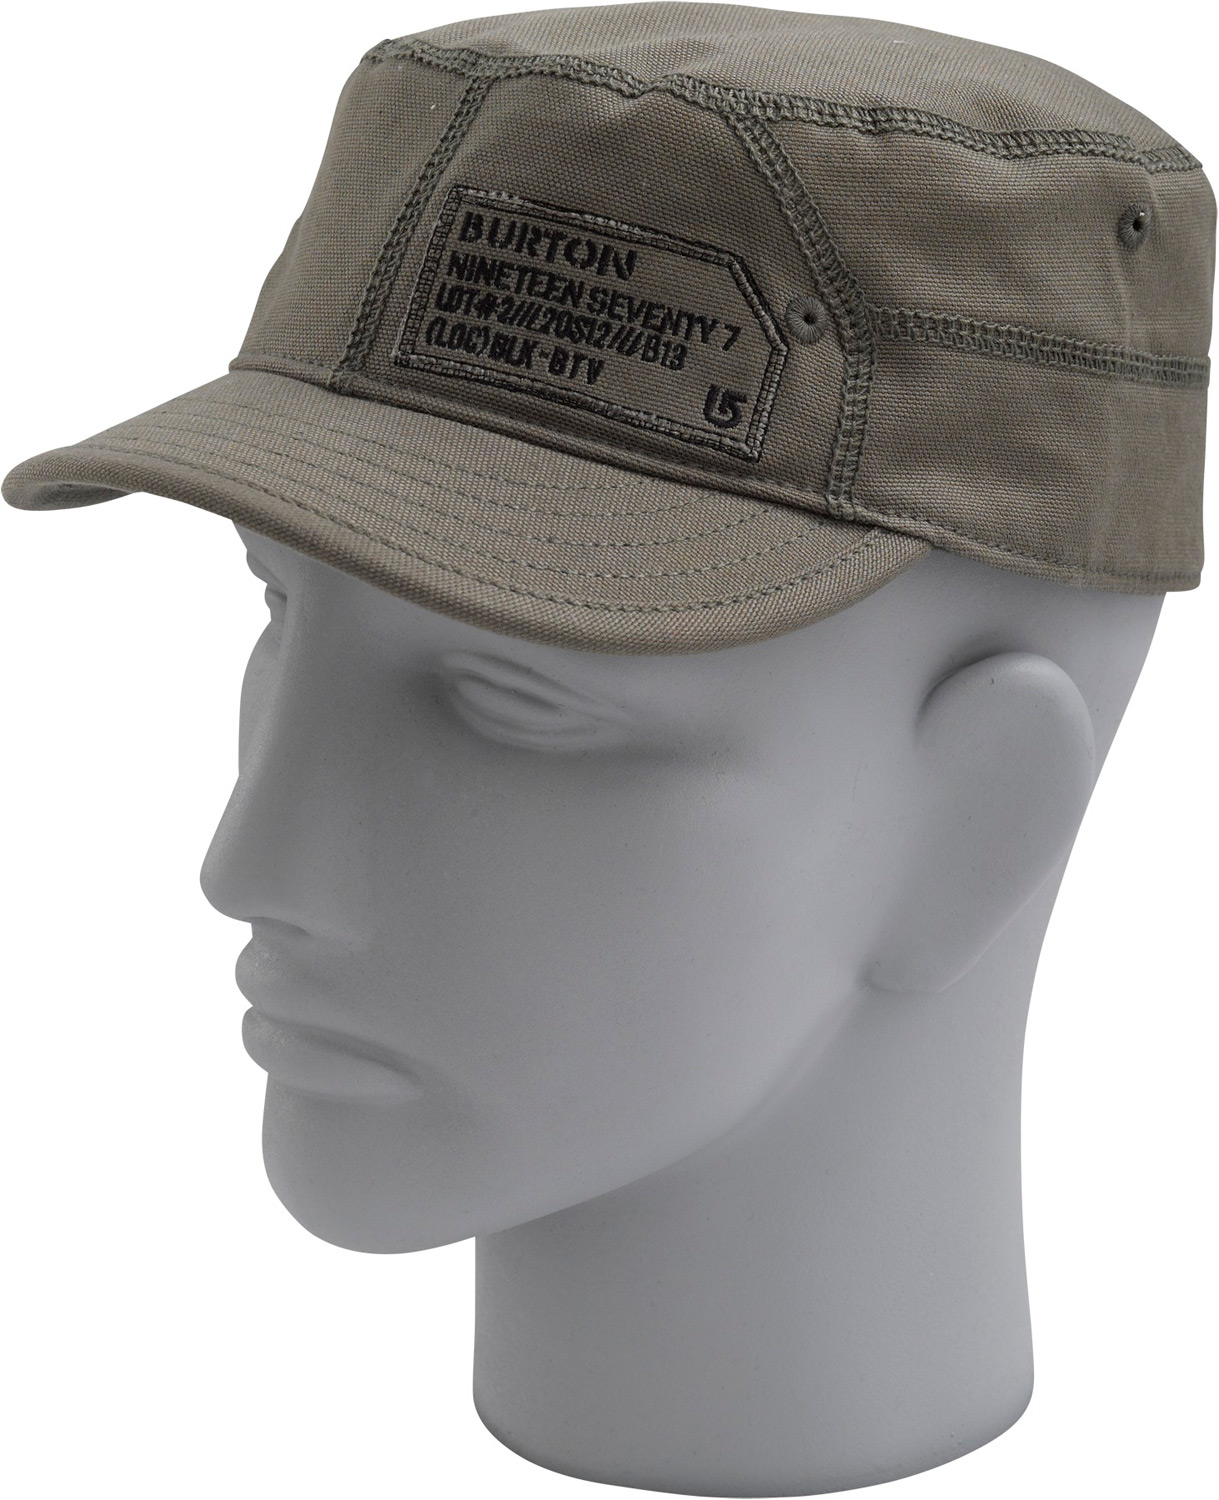 Snowboard Key Features of the Burton Brigade Cap: 100% Cotton Military Fit Brigade Embroidery Curved Visor - $15.95